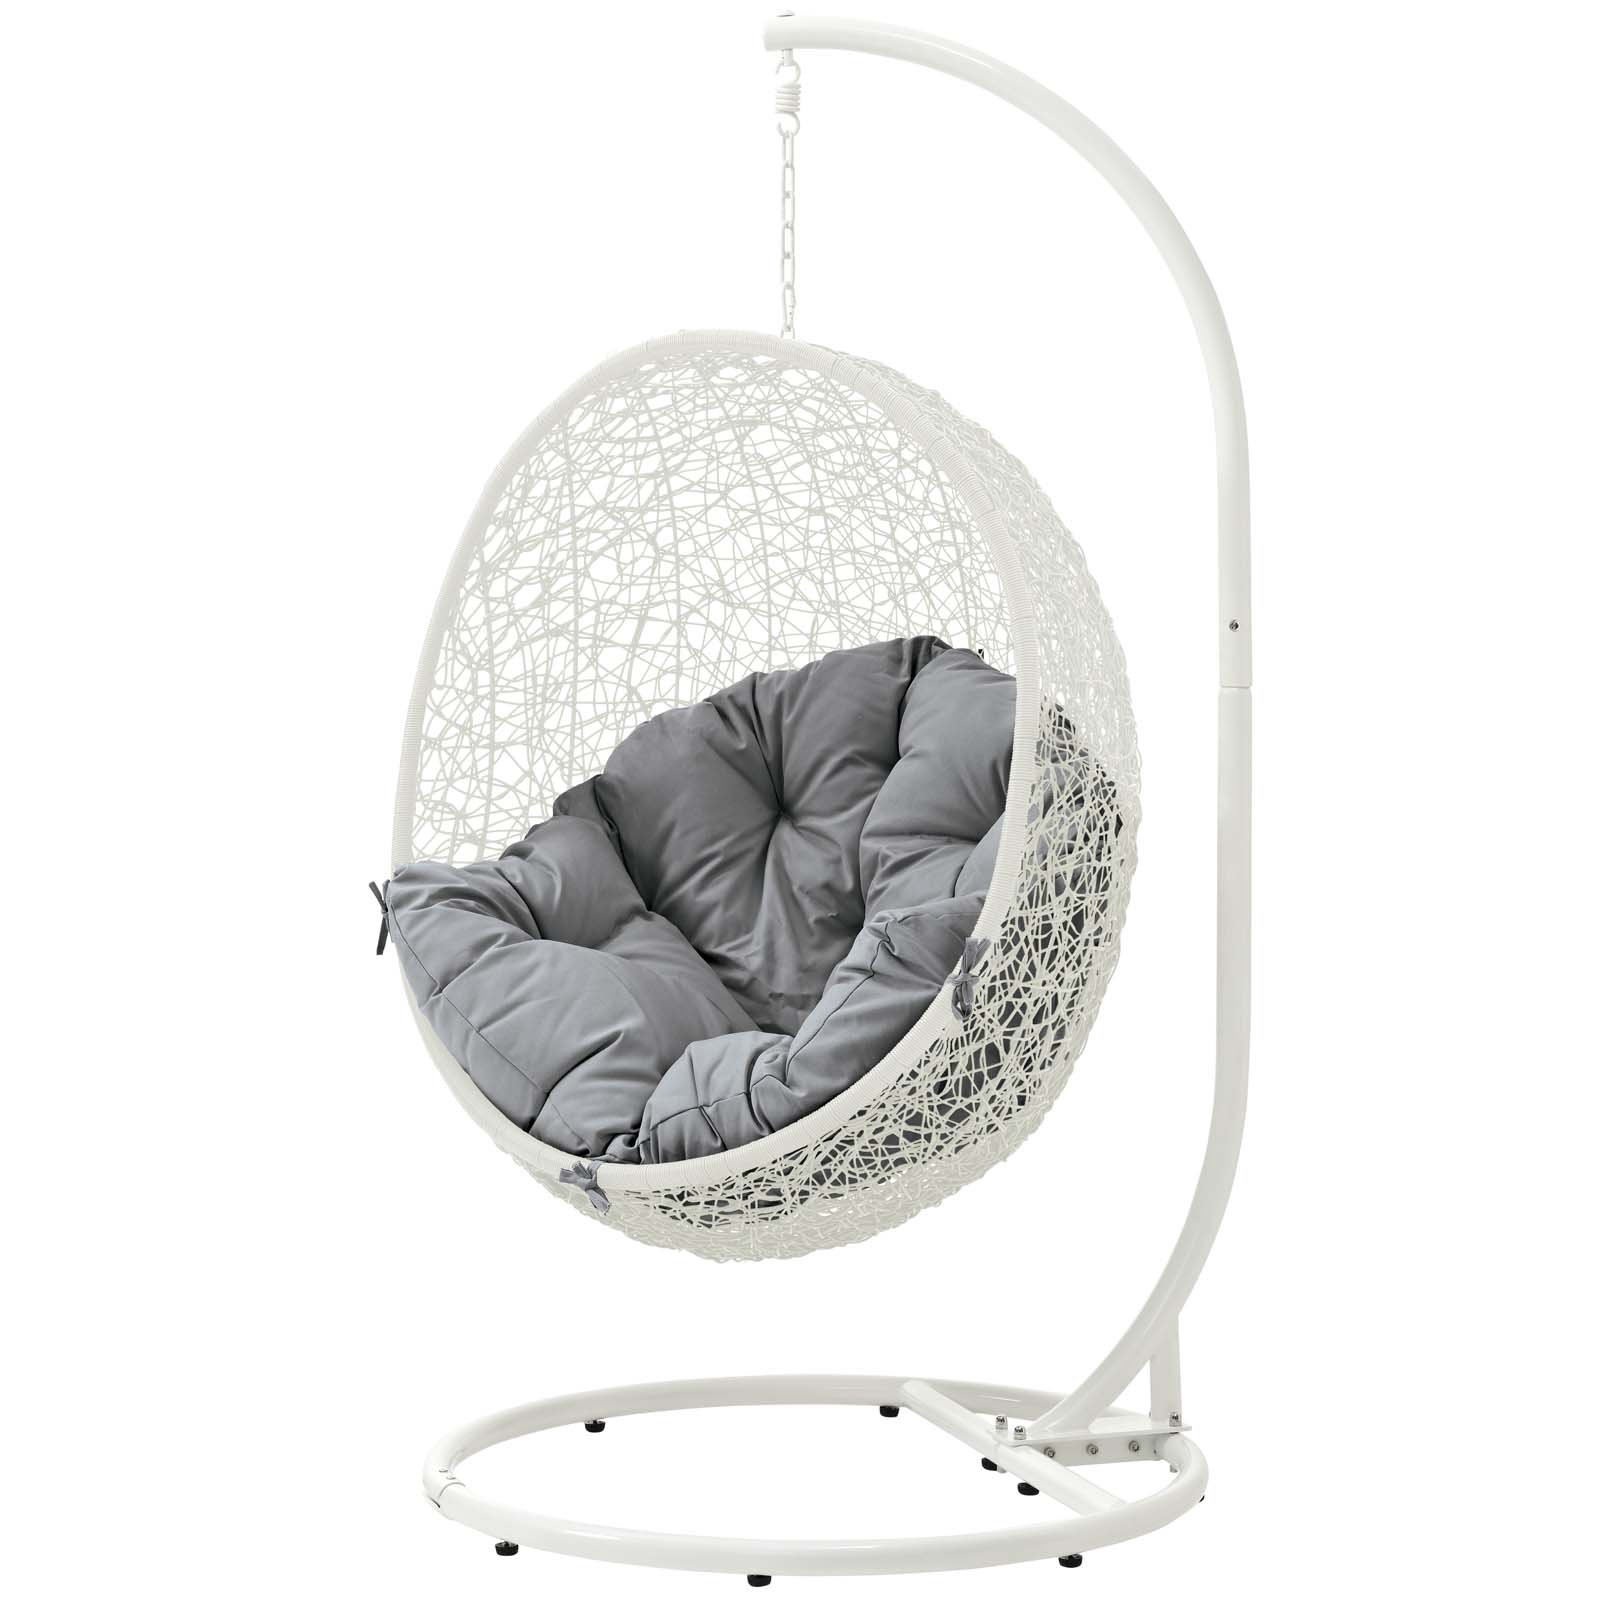 Outdoor Wicker Plastic Tear Porch Swings With Stand Pertaining To Most Up To Date Modway Eei 2273 Gry Whi Hide Wicker Outdoor Patio Swing Egg (Gallery 29 of 30)